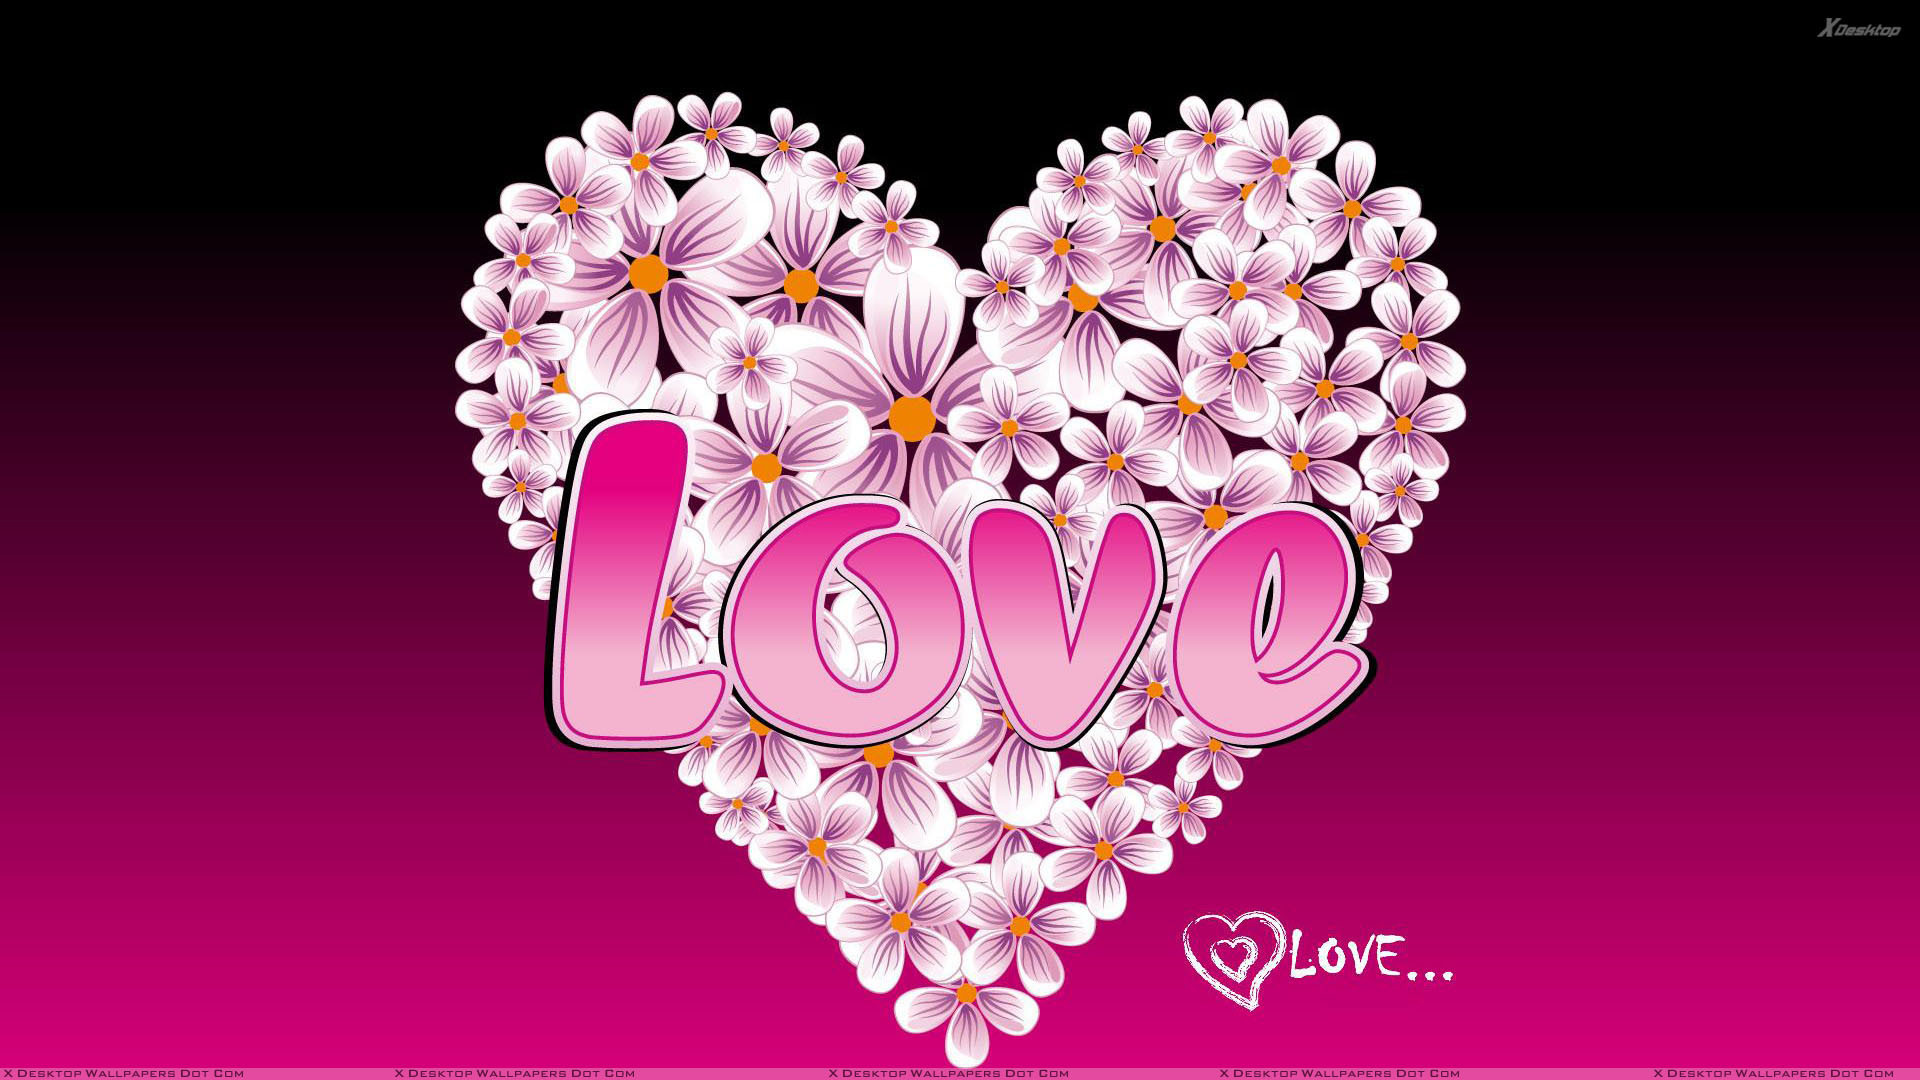 Heart Love Wallpapers Images 59 Background Pictures